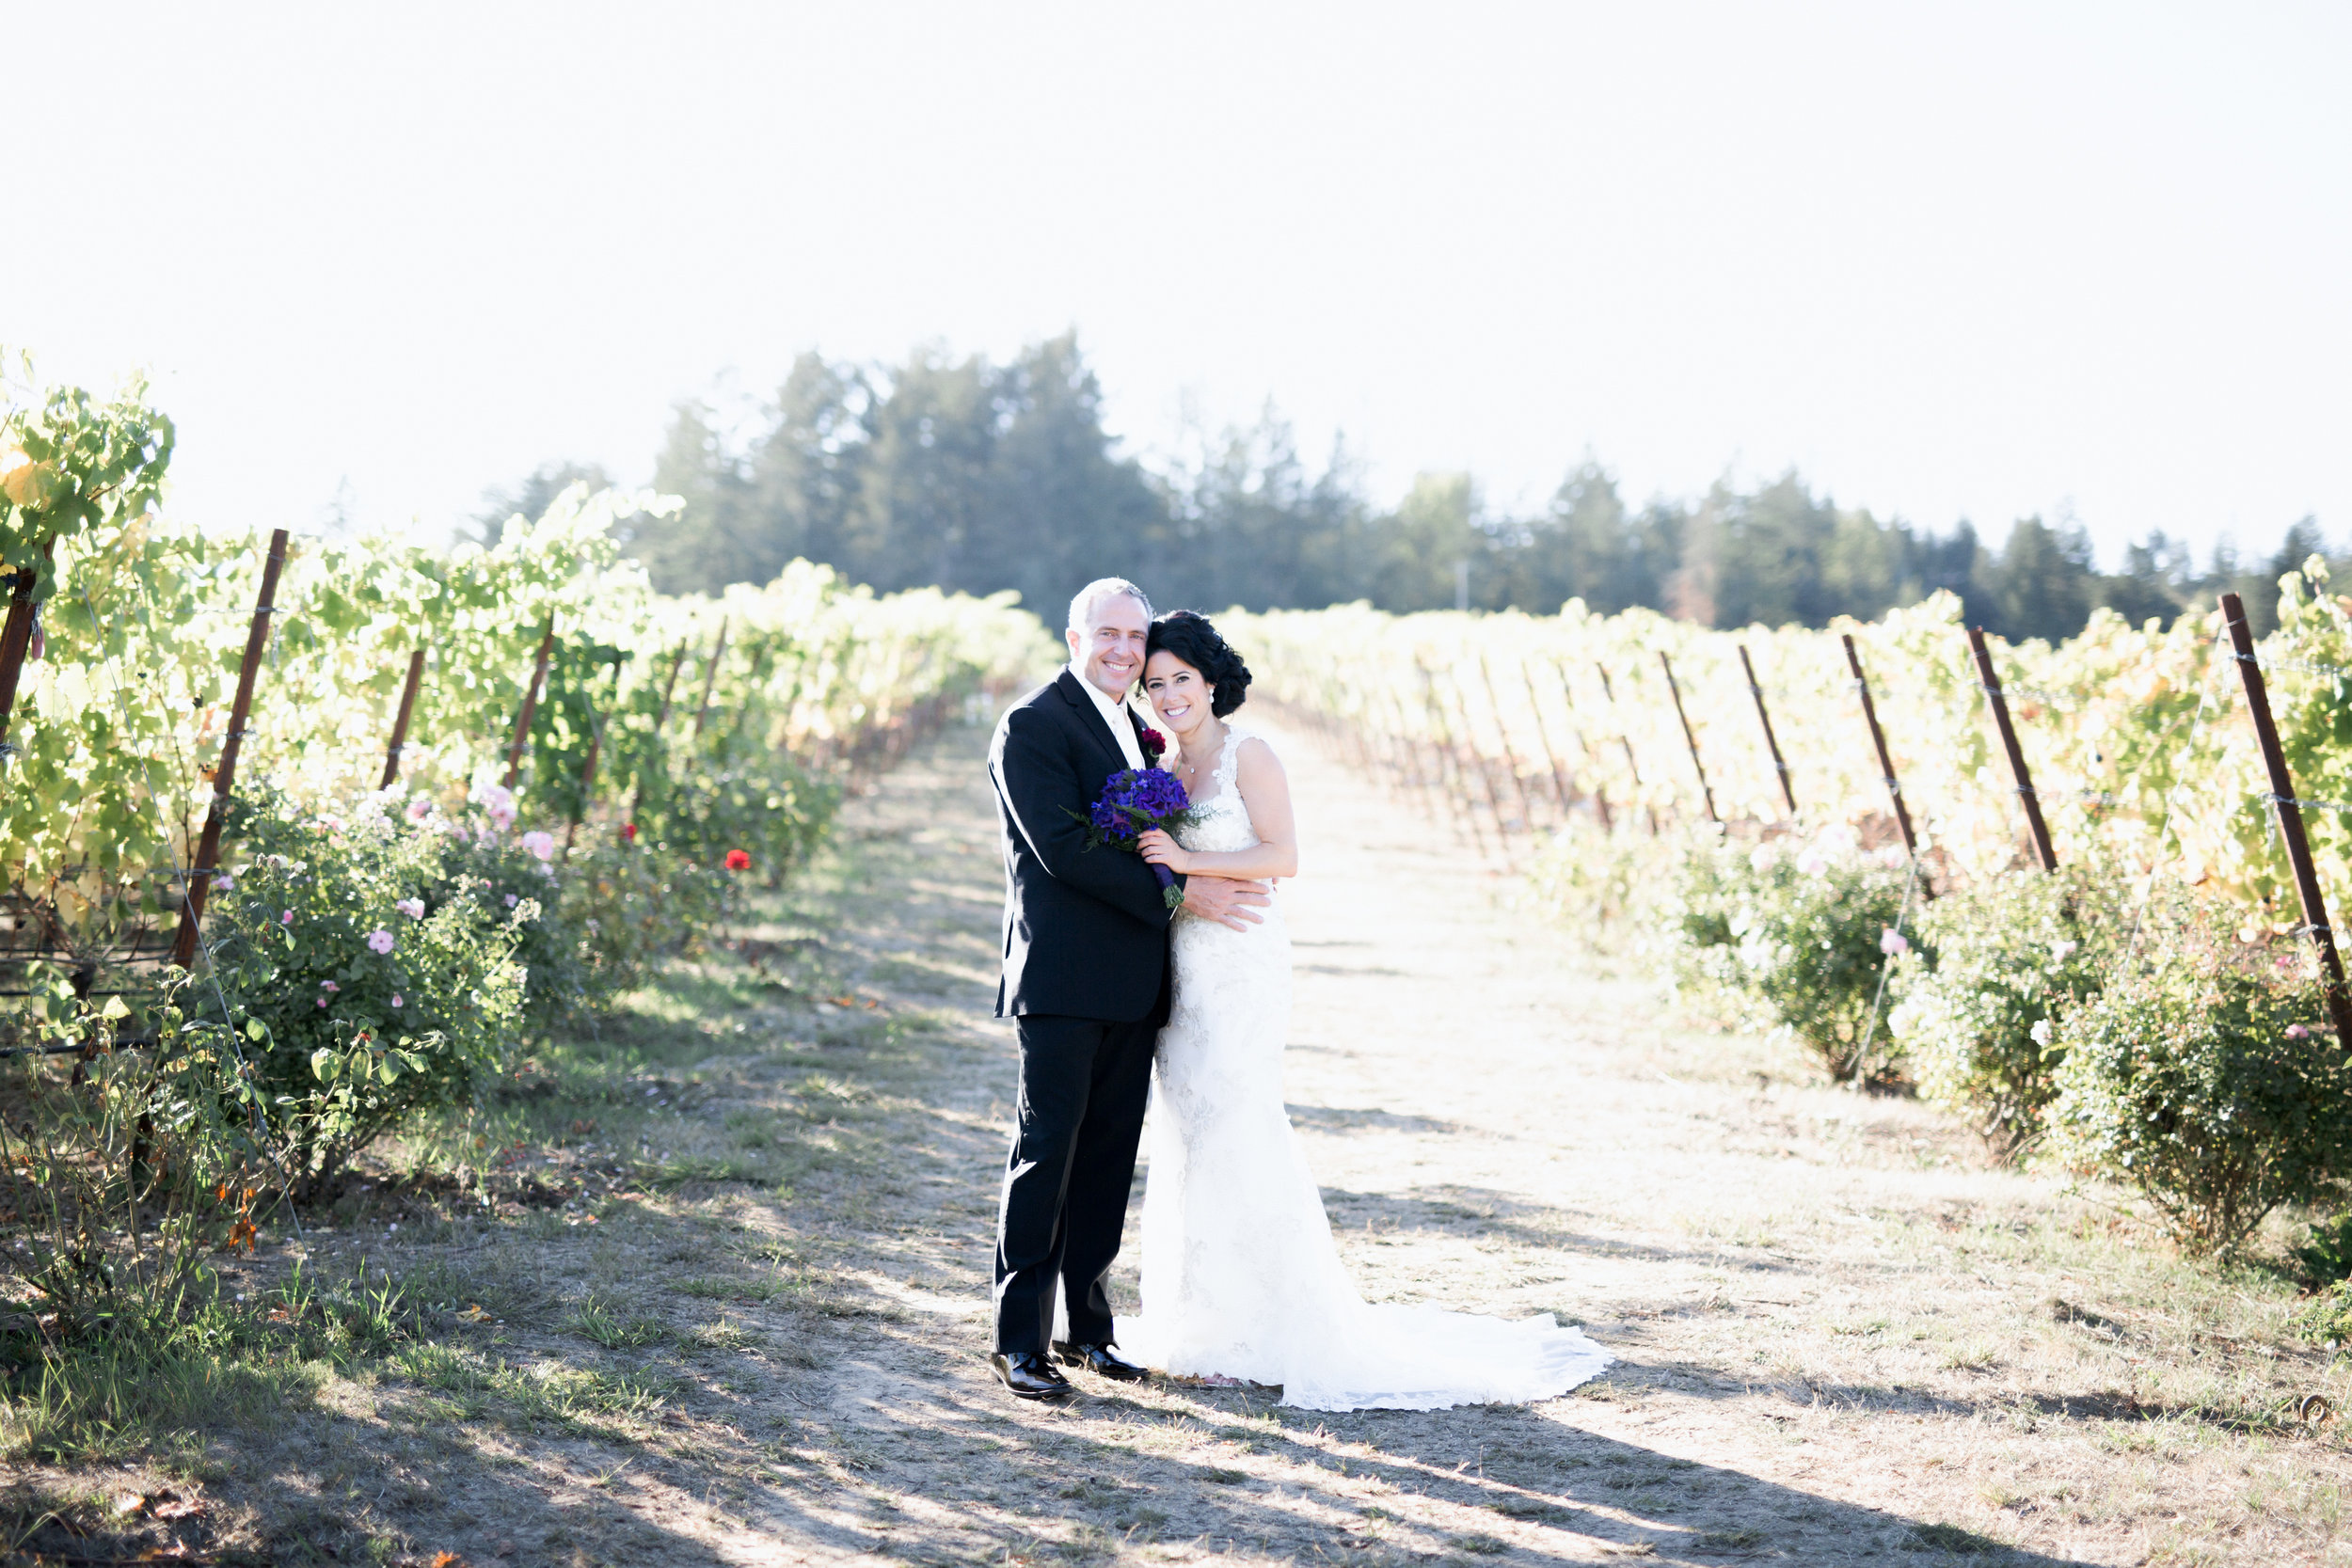 MacCoy Dean Wedding Photography Fine Art Bright Clean Portland Oregon-1-8.jpg